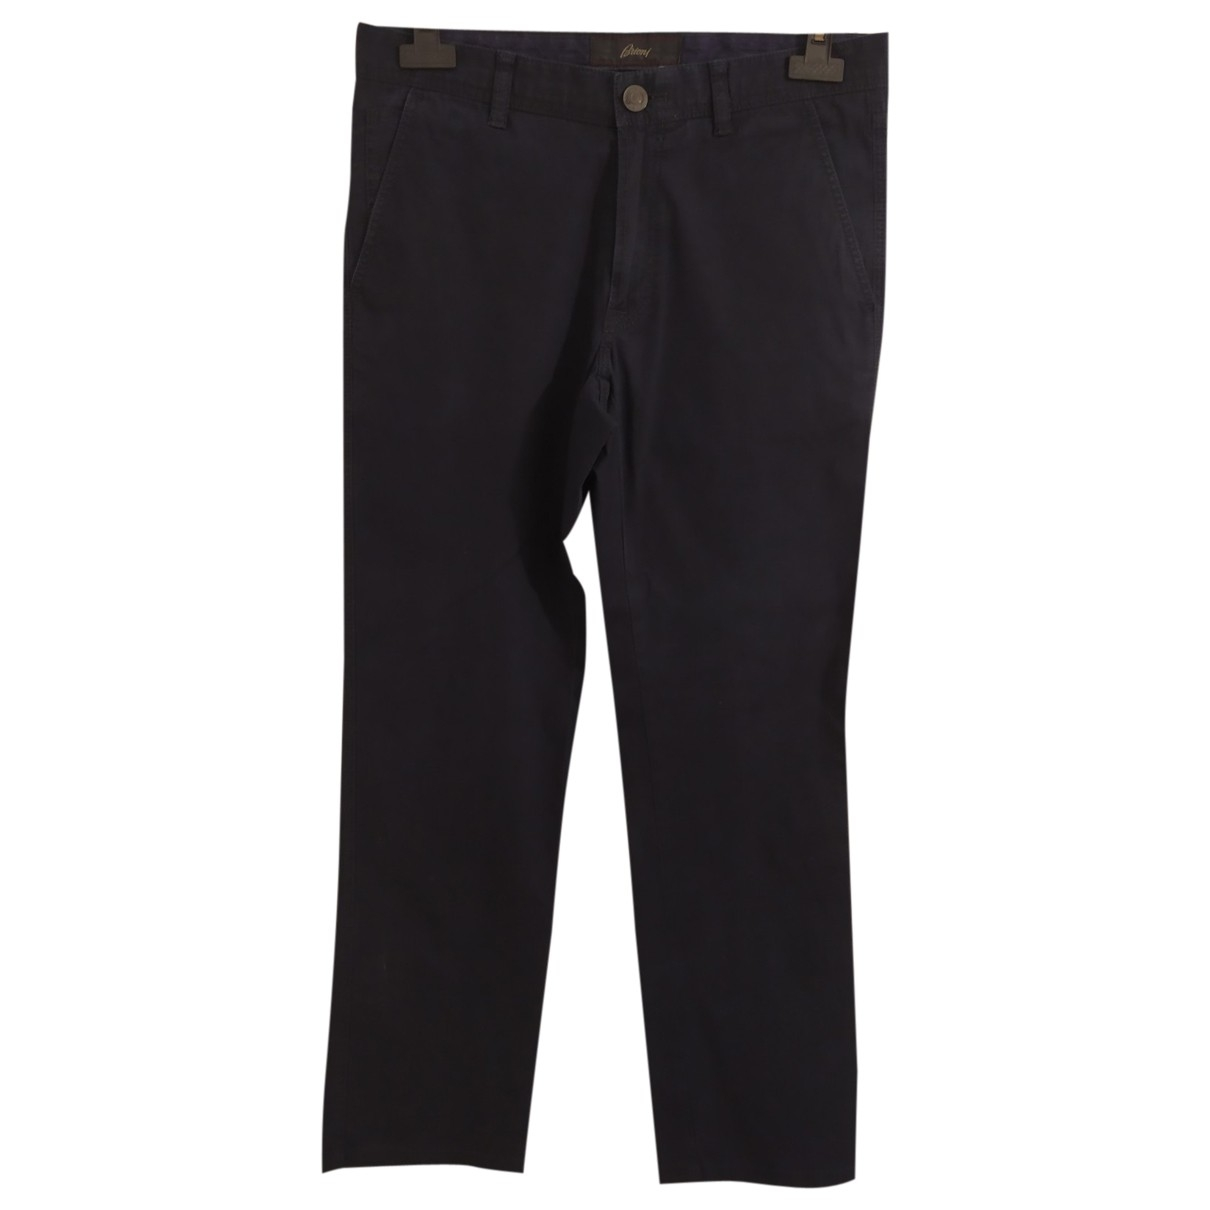 Brioni \N Navy Cotton Trousers for Men 34 UK - US